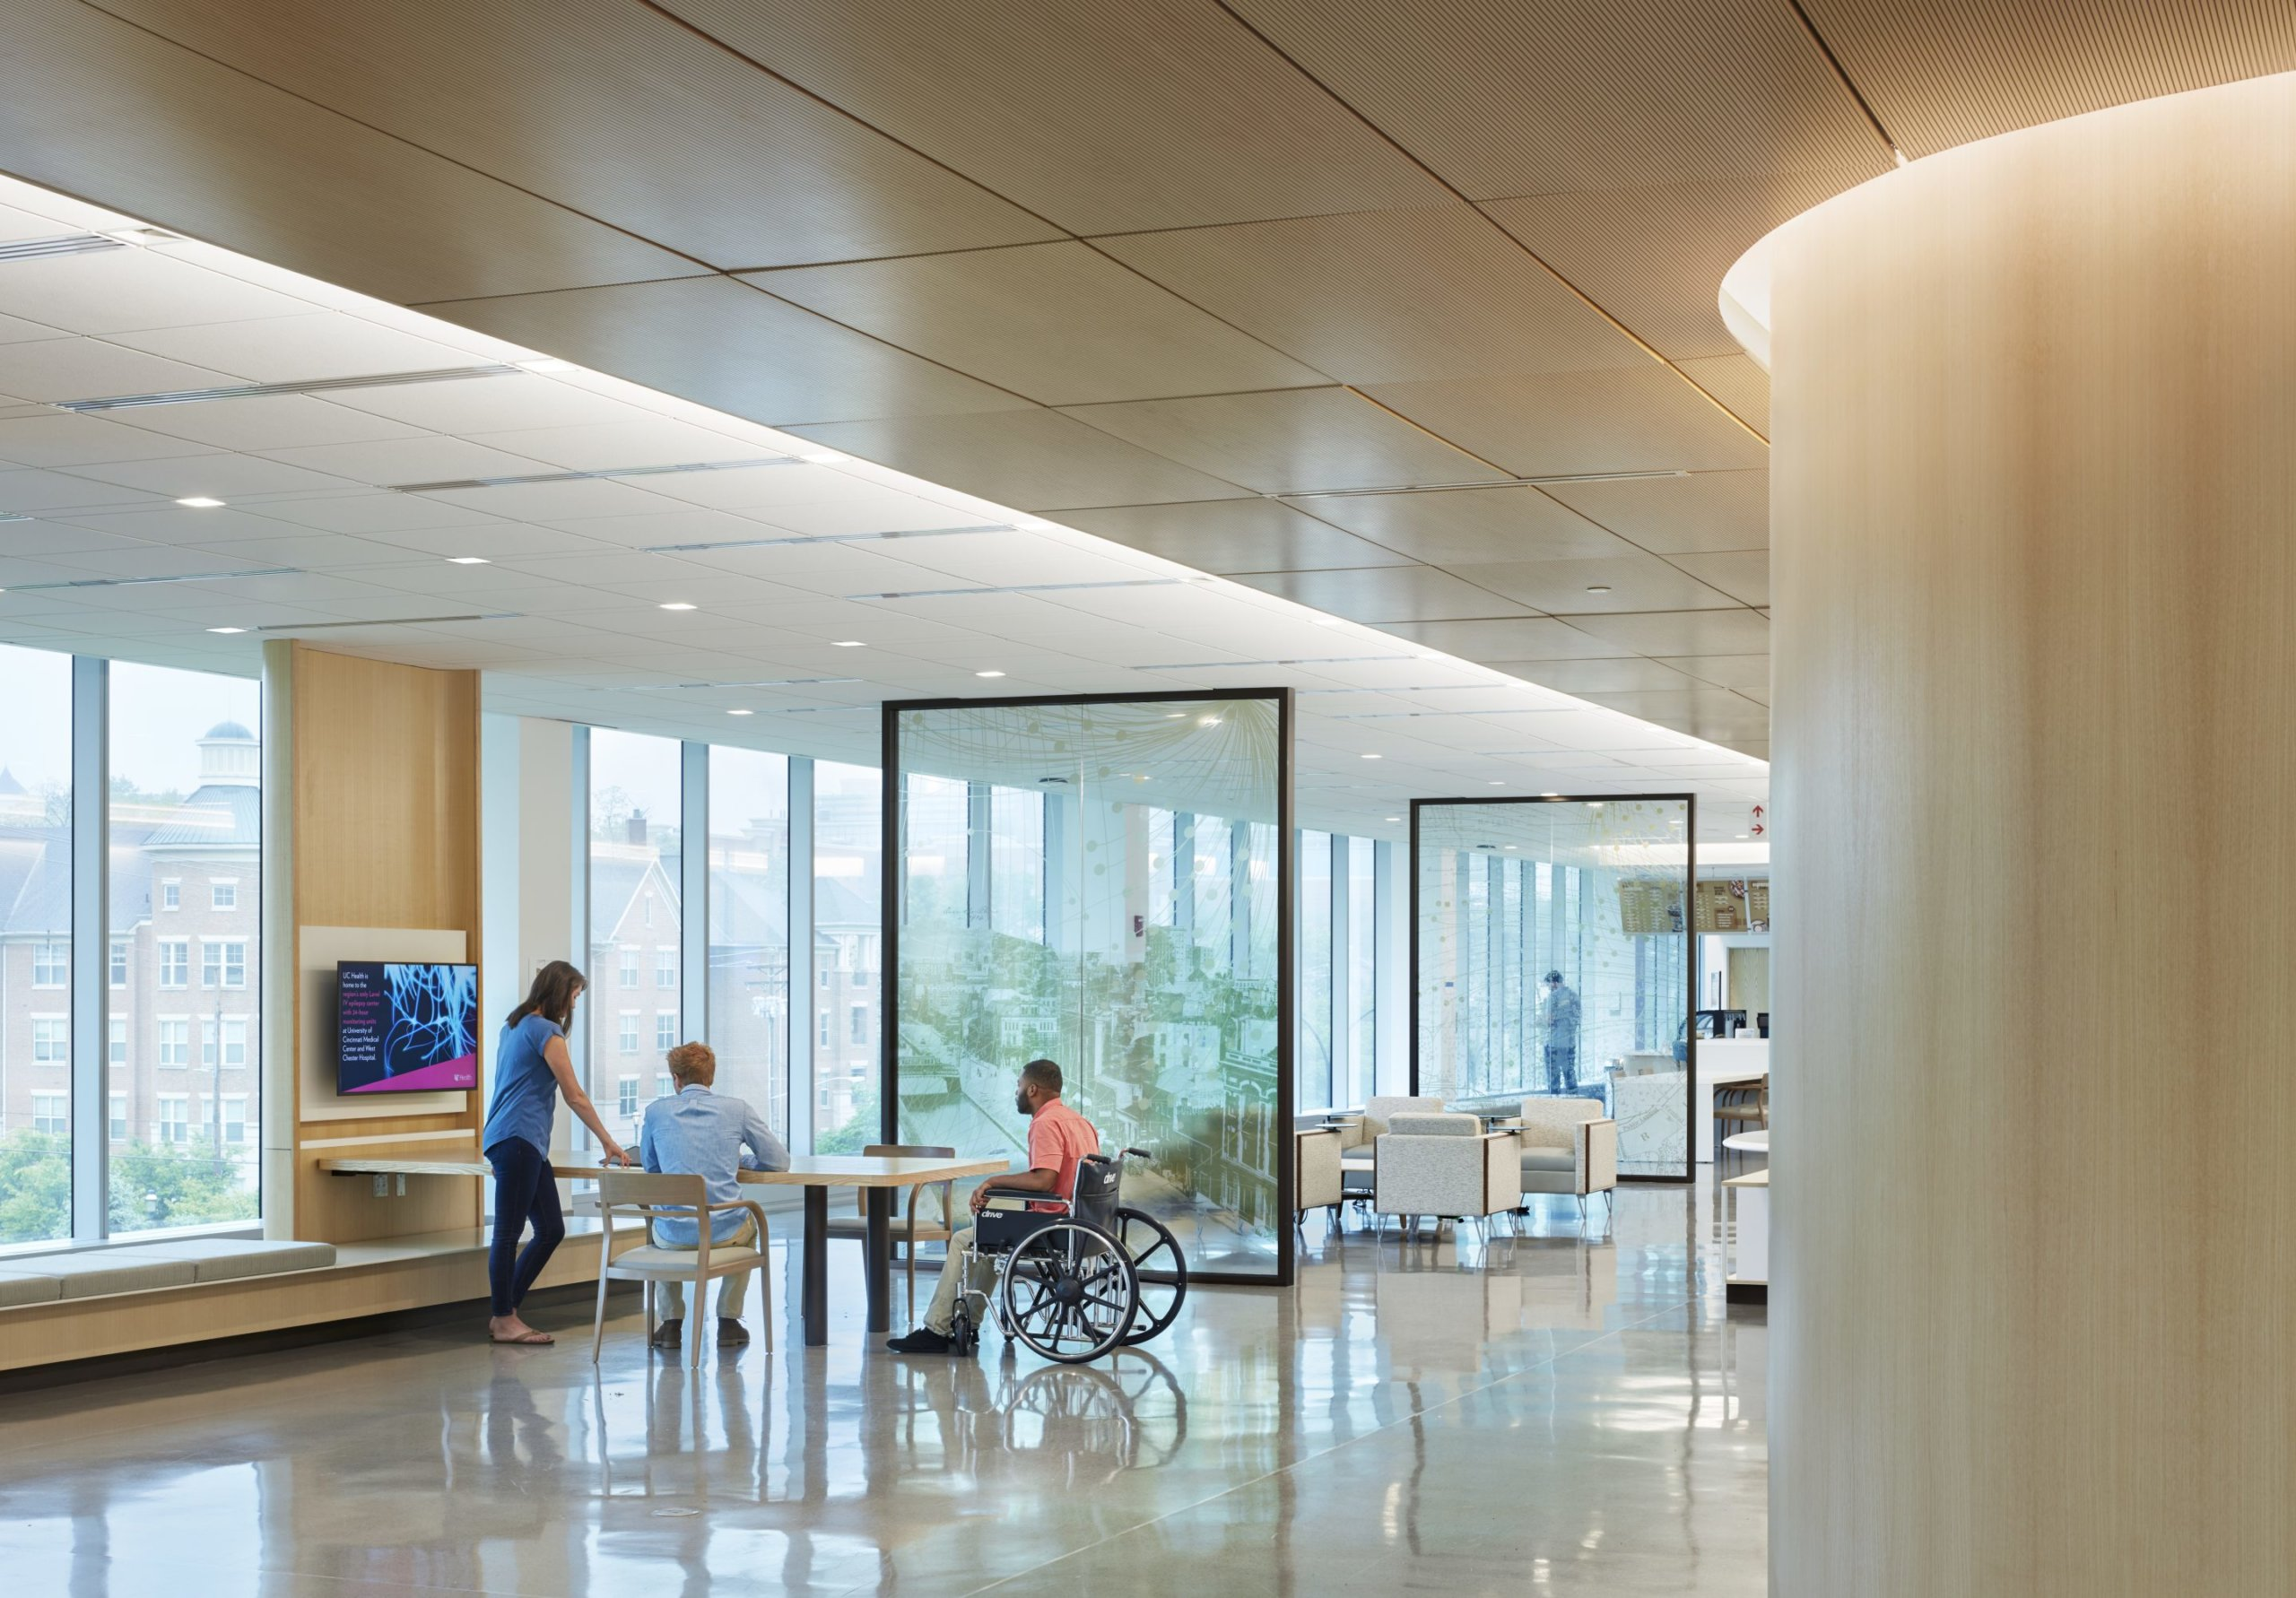 University of Cincinnati Gardner Neurological Institute. Main lobby that contains multi use areas for learning and waiting, museum, café, and classrooms. The spaces are divided by glass panels that contain artwork of the local culture of Cincinnati.